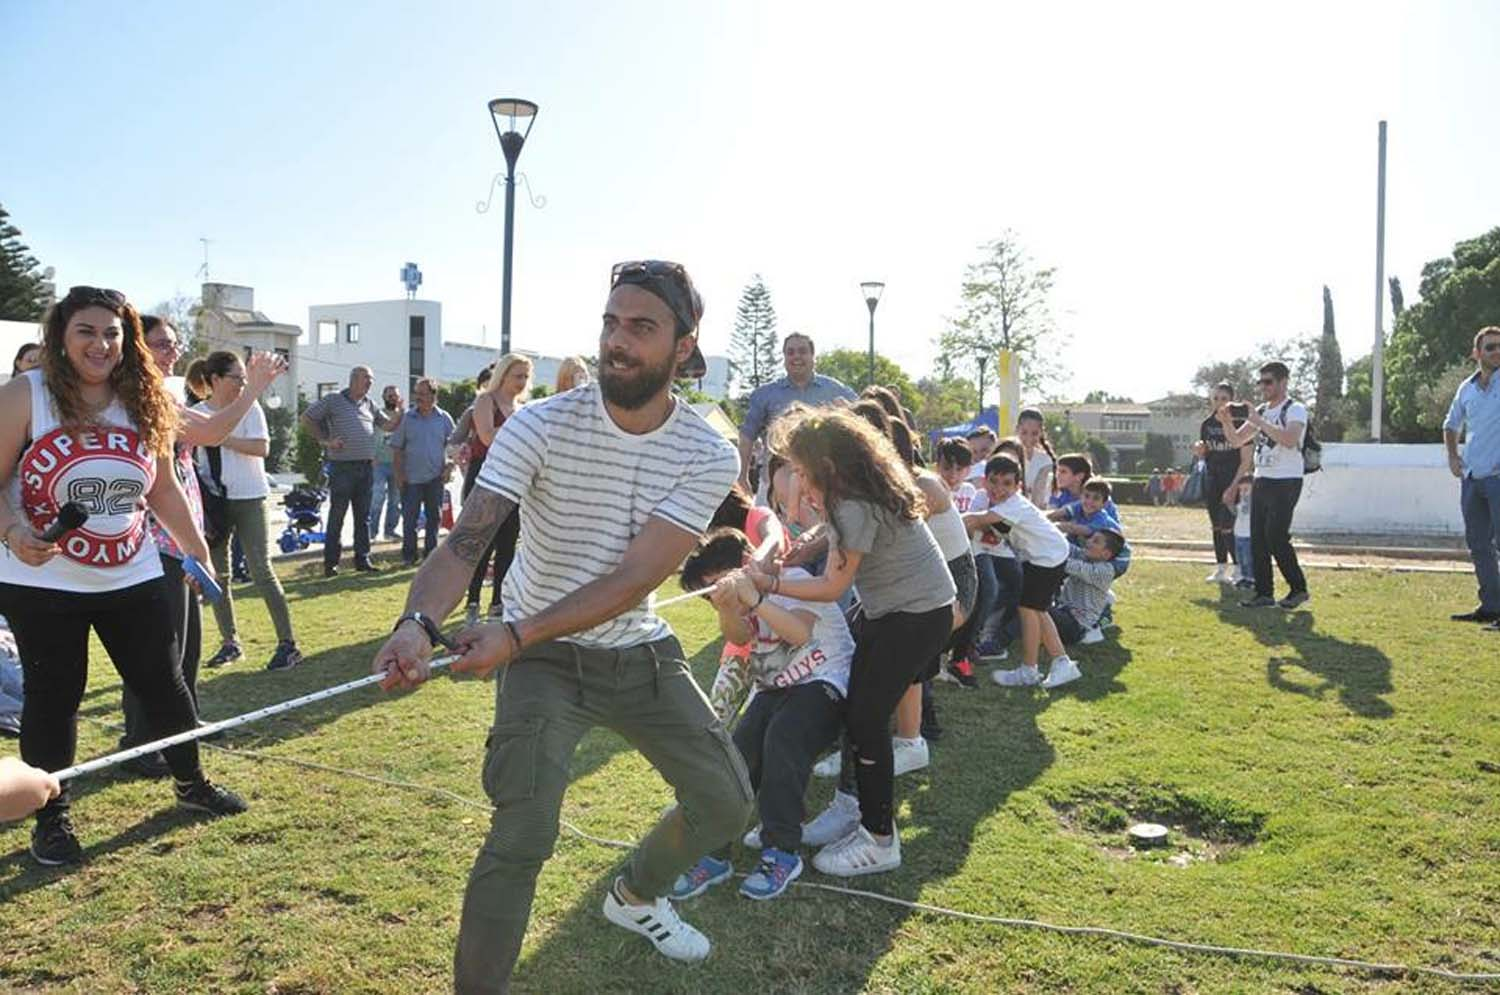 Traditional_Games_Festival_Engomi_Municipality_15April2018_3